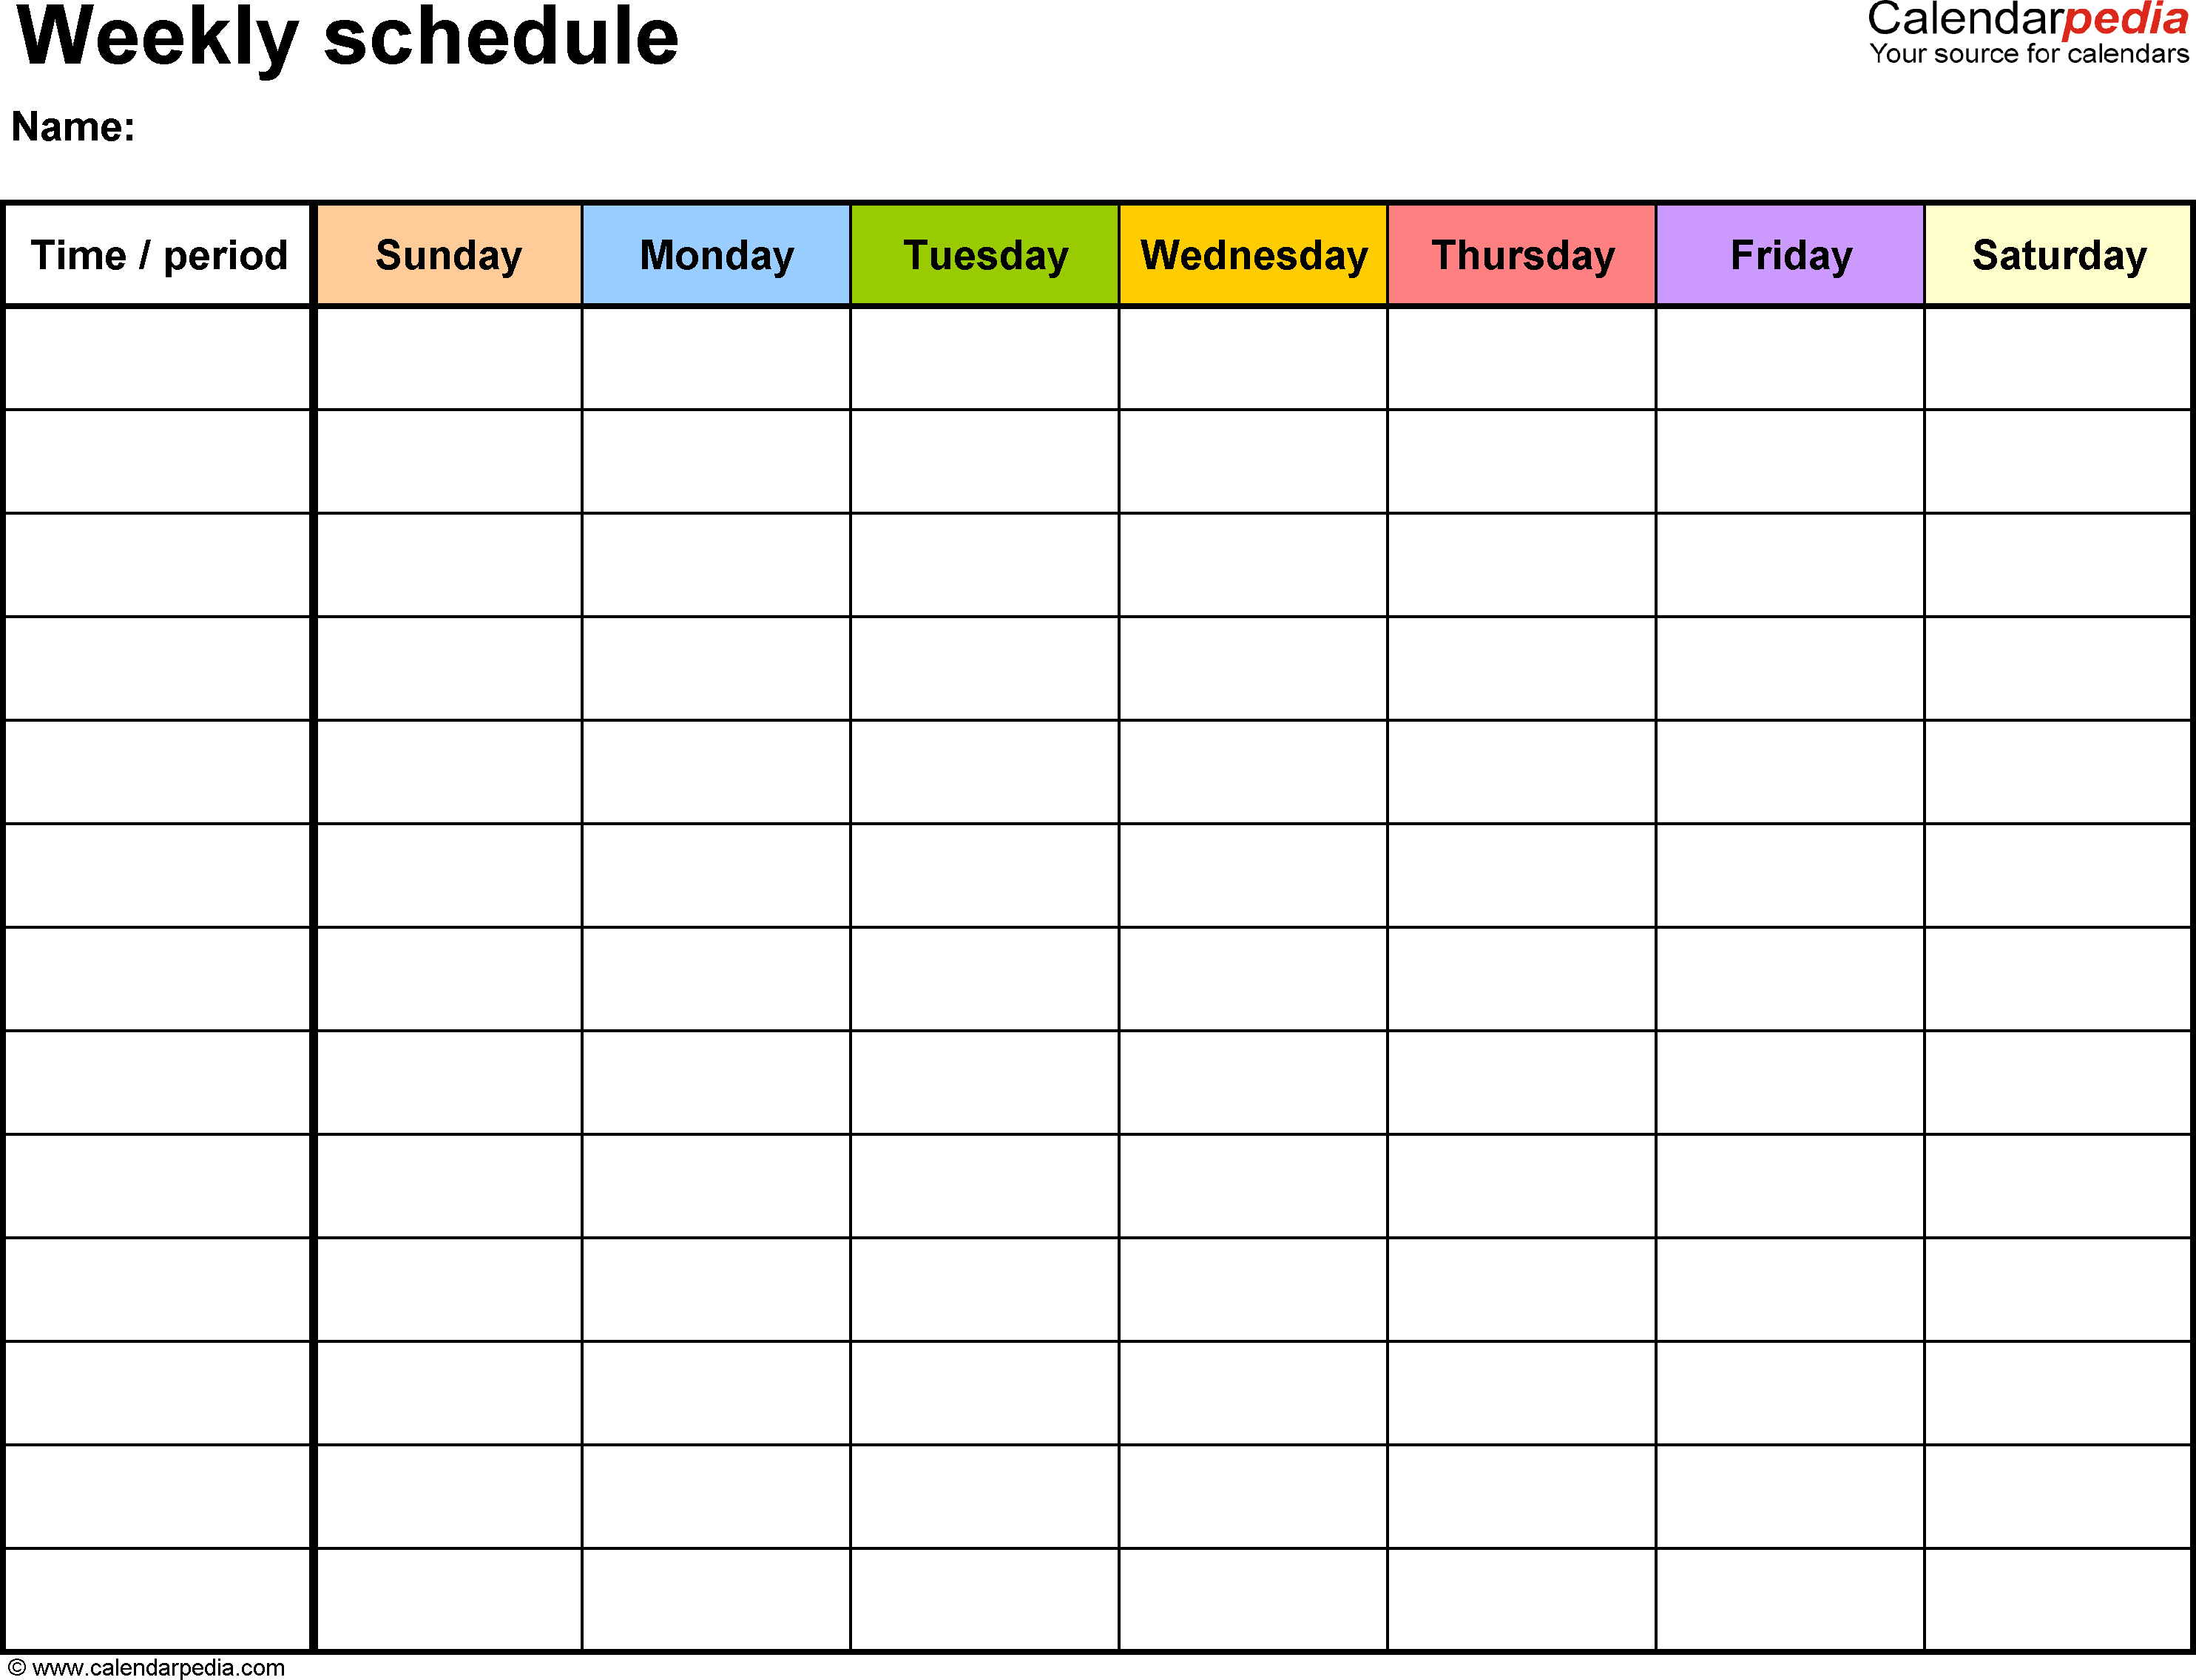 Free Weekly Schedule Templates For Word - 18 Templates with Printable Weekly Calendar Template